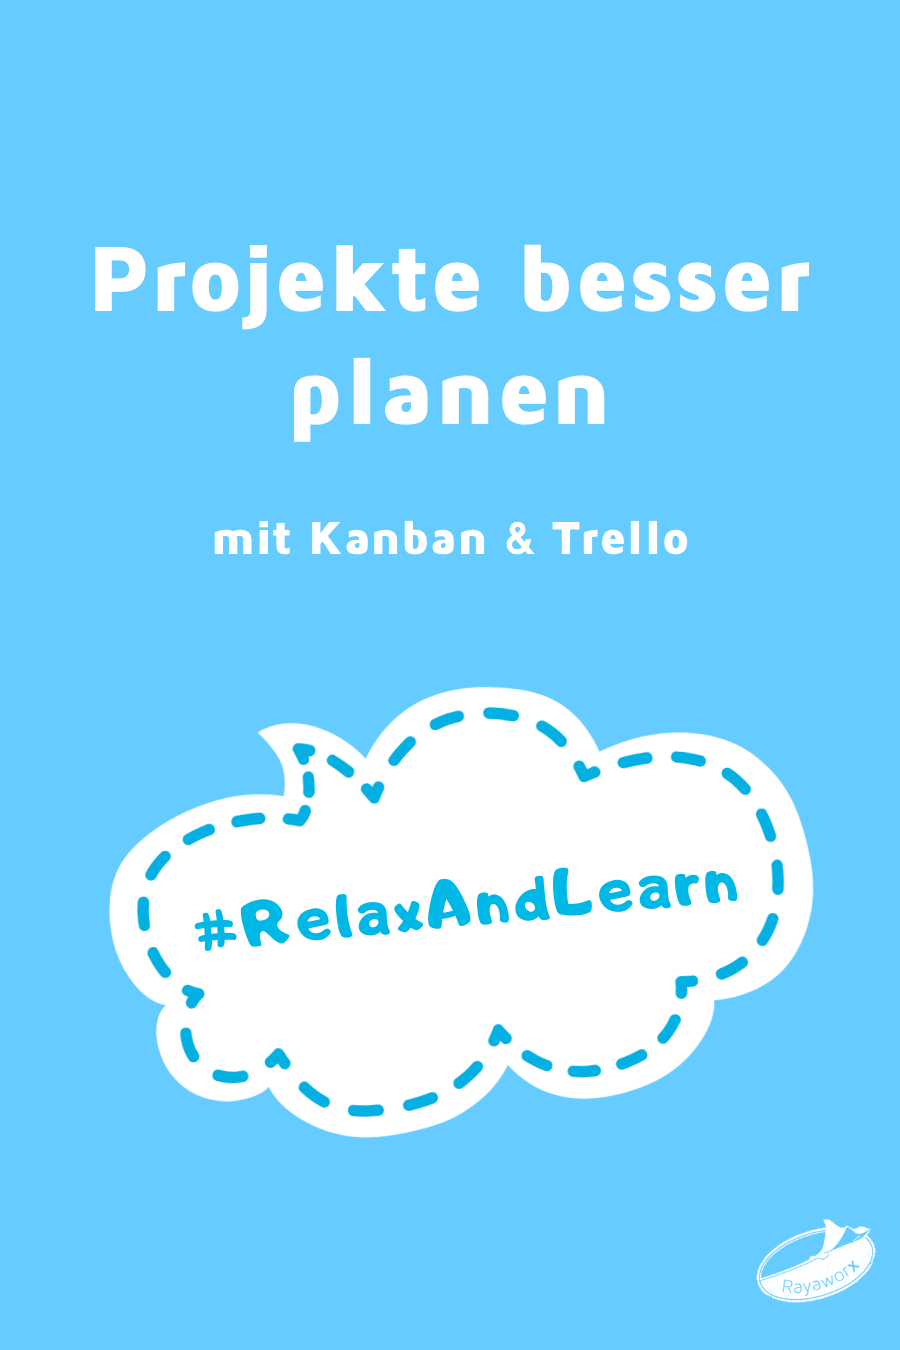 Rayaworx relax and learn: Trello